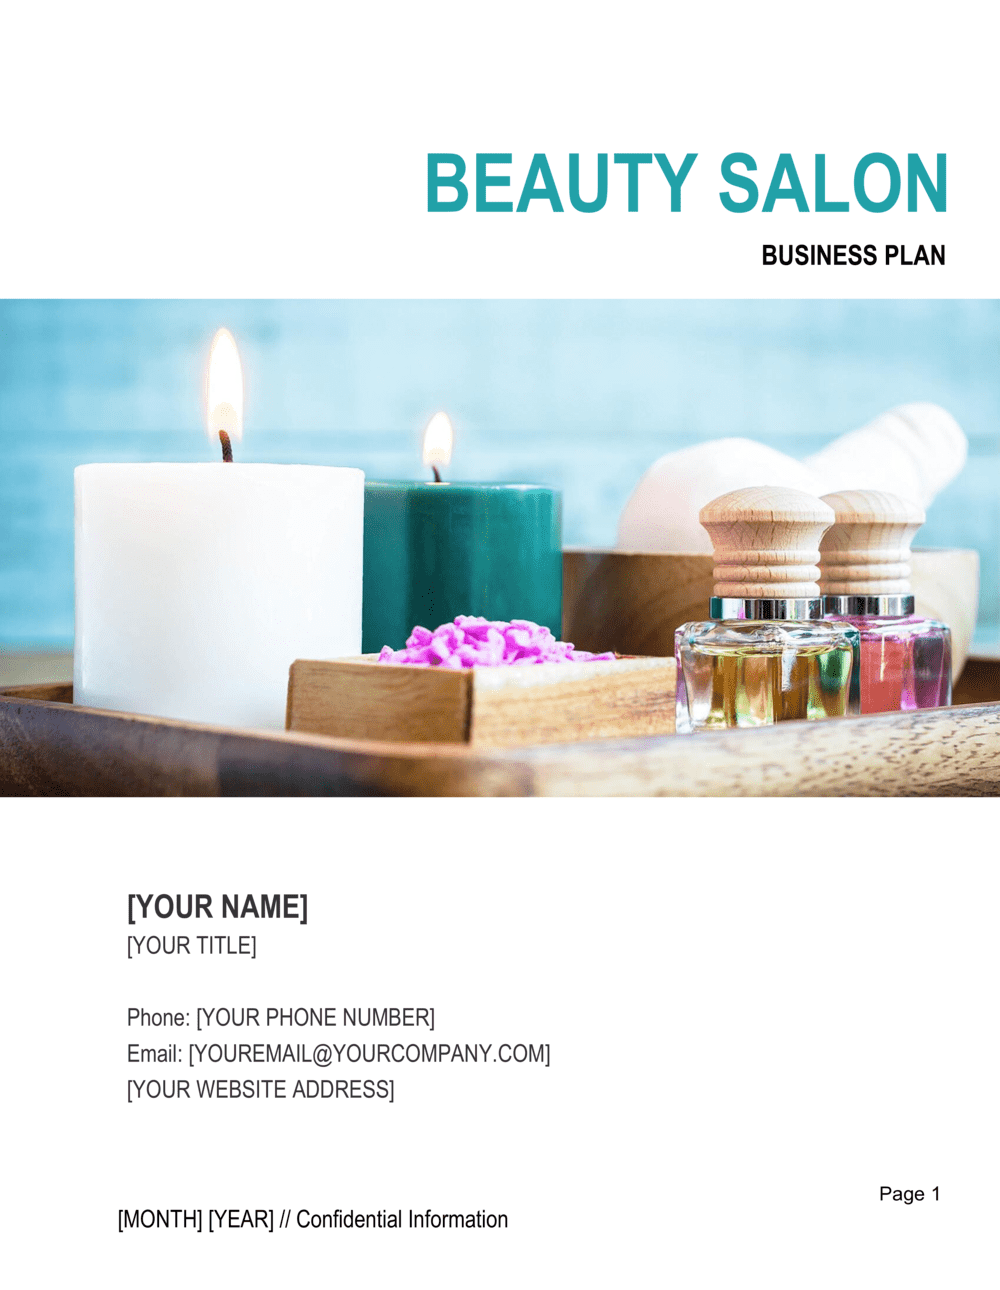 Business-in-a-Box's Beauty Salon Business Plan Template